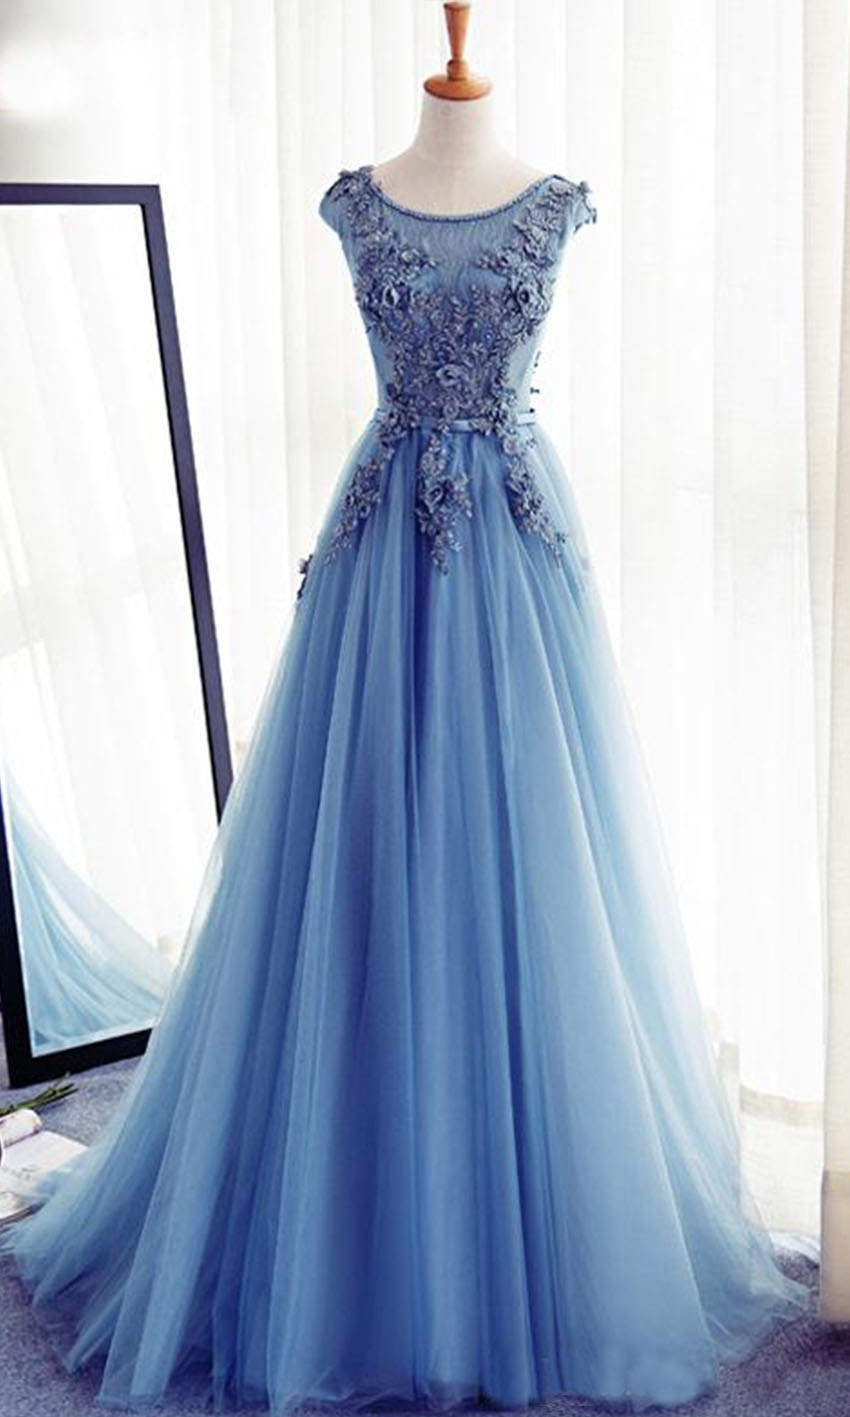 Flowers Embellished Sheer Lace Prom Gowns Lace Up...